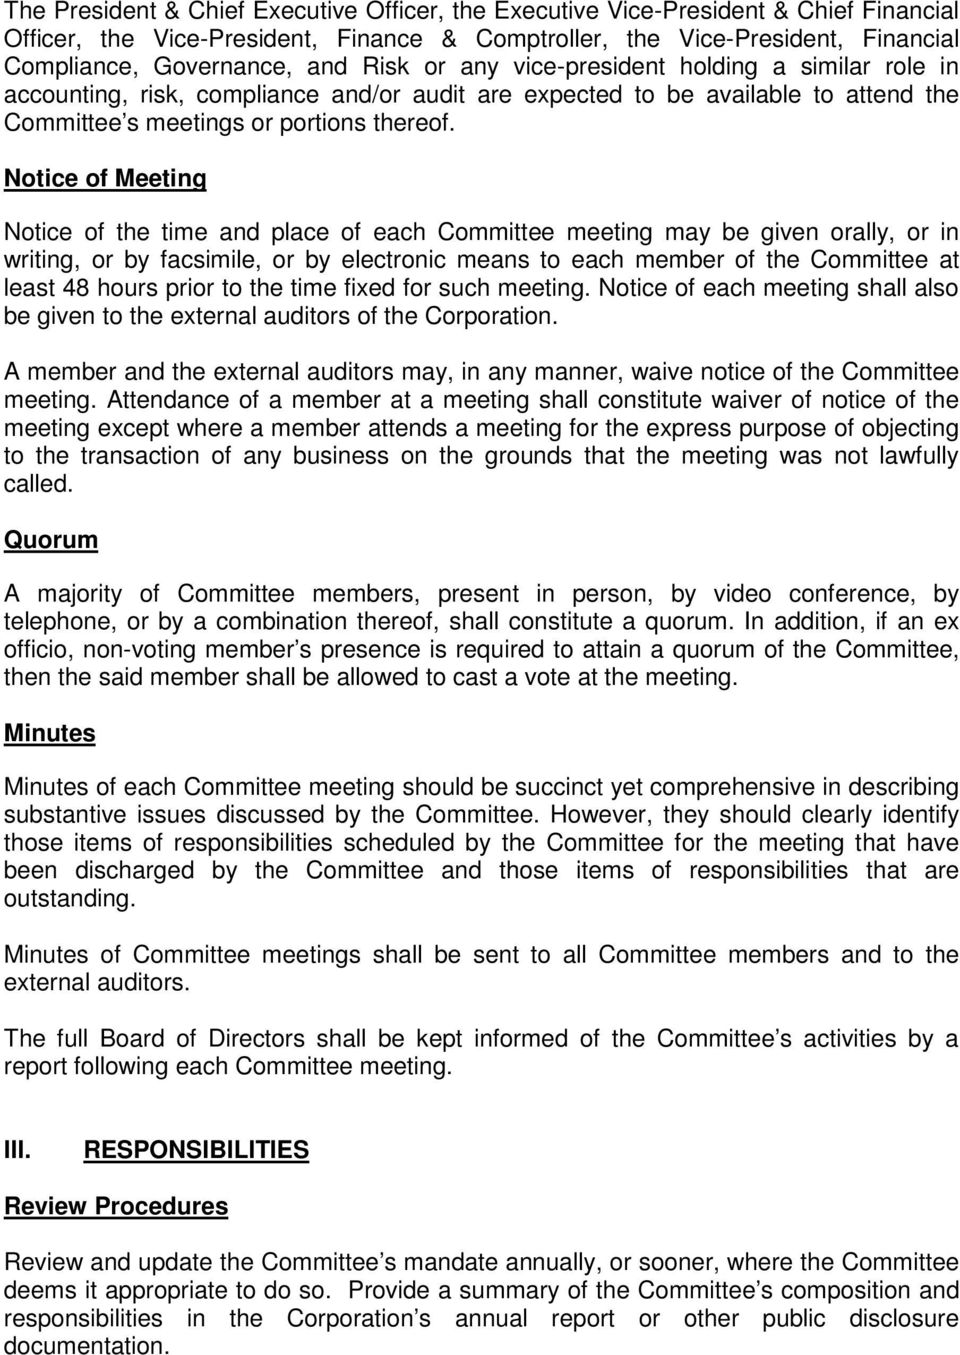 Notice of Meeting Notice of the time and place of each Committee meeting may be given orally, or in writing, or by facsimile, or by electronic means to each member of the Committee at least 48 hours